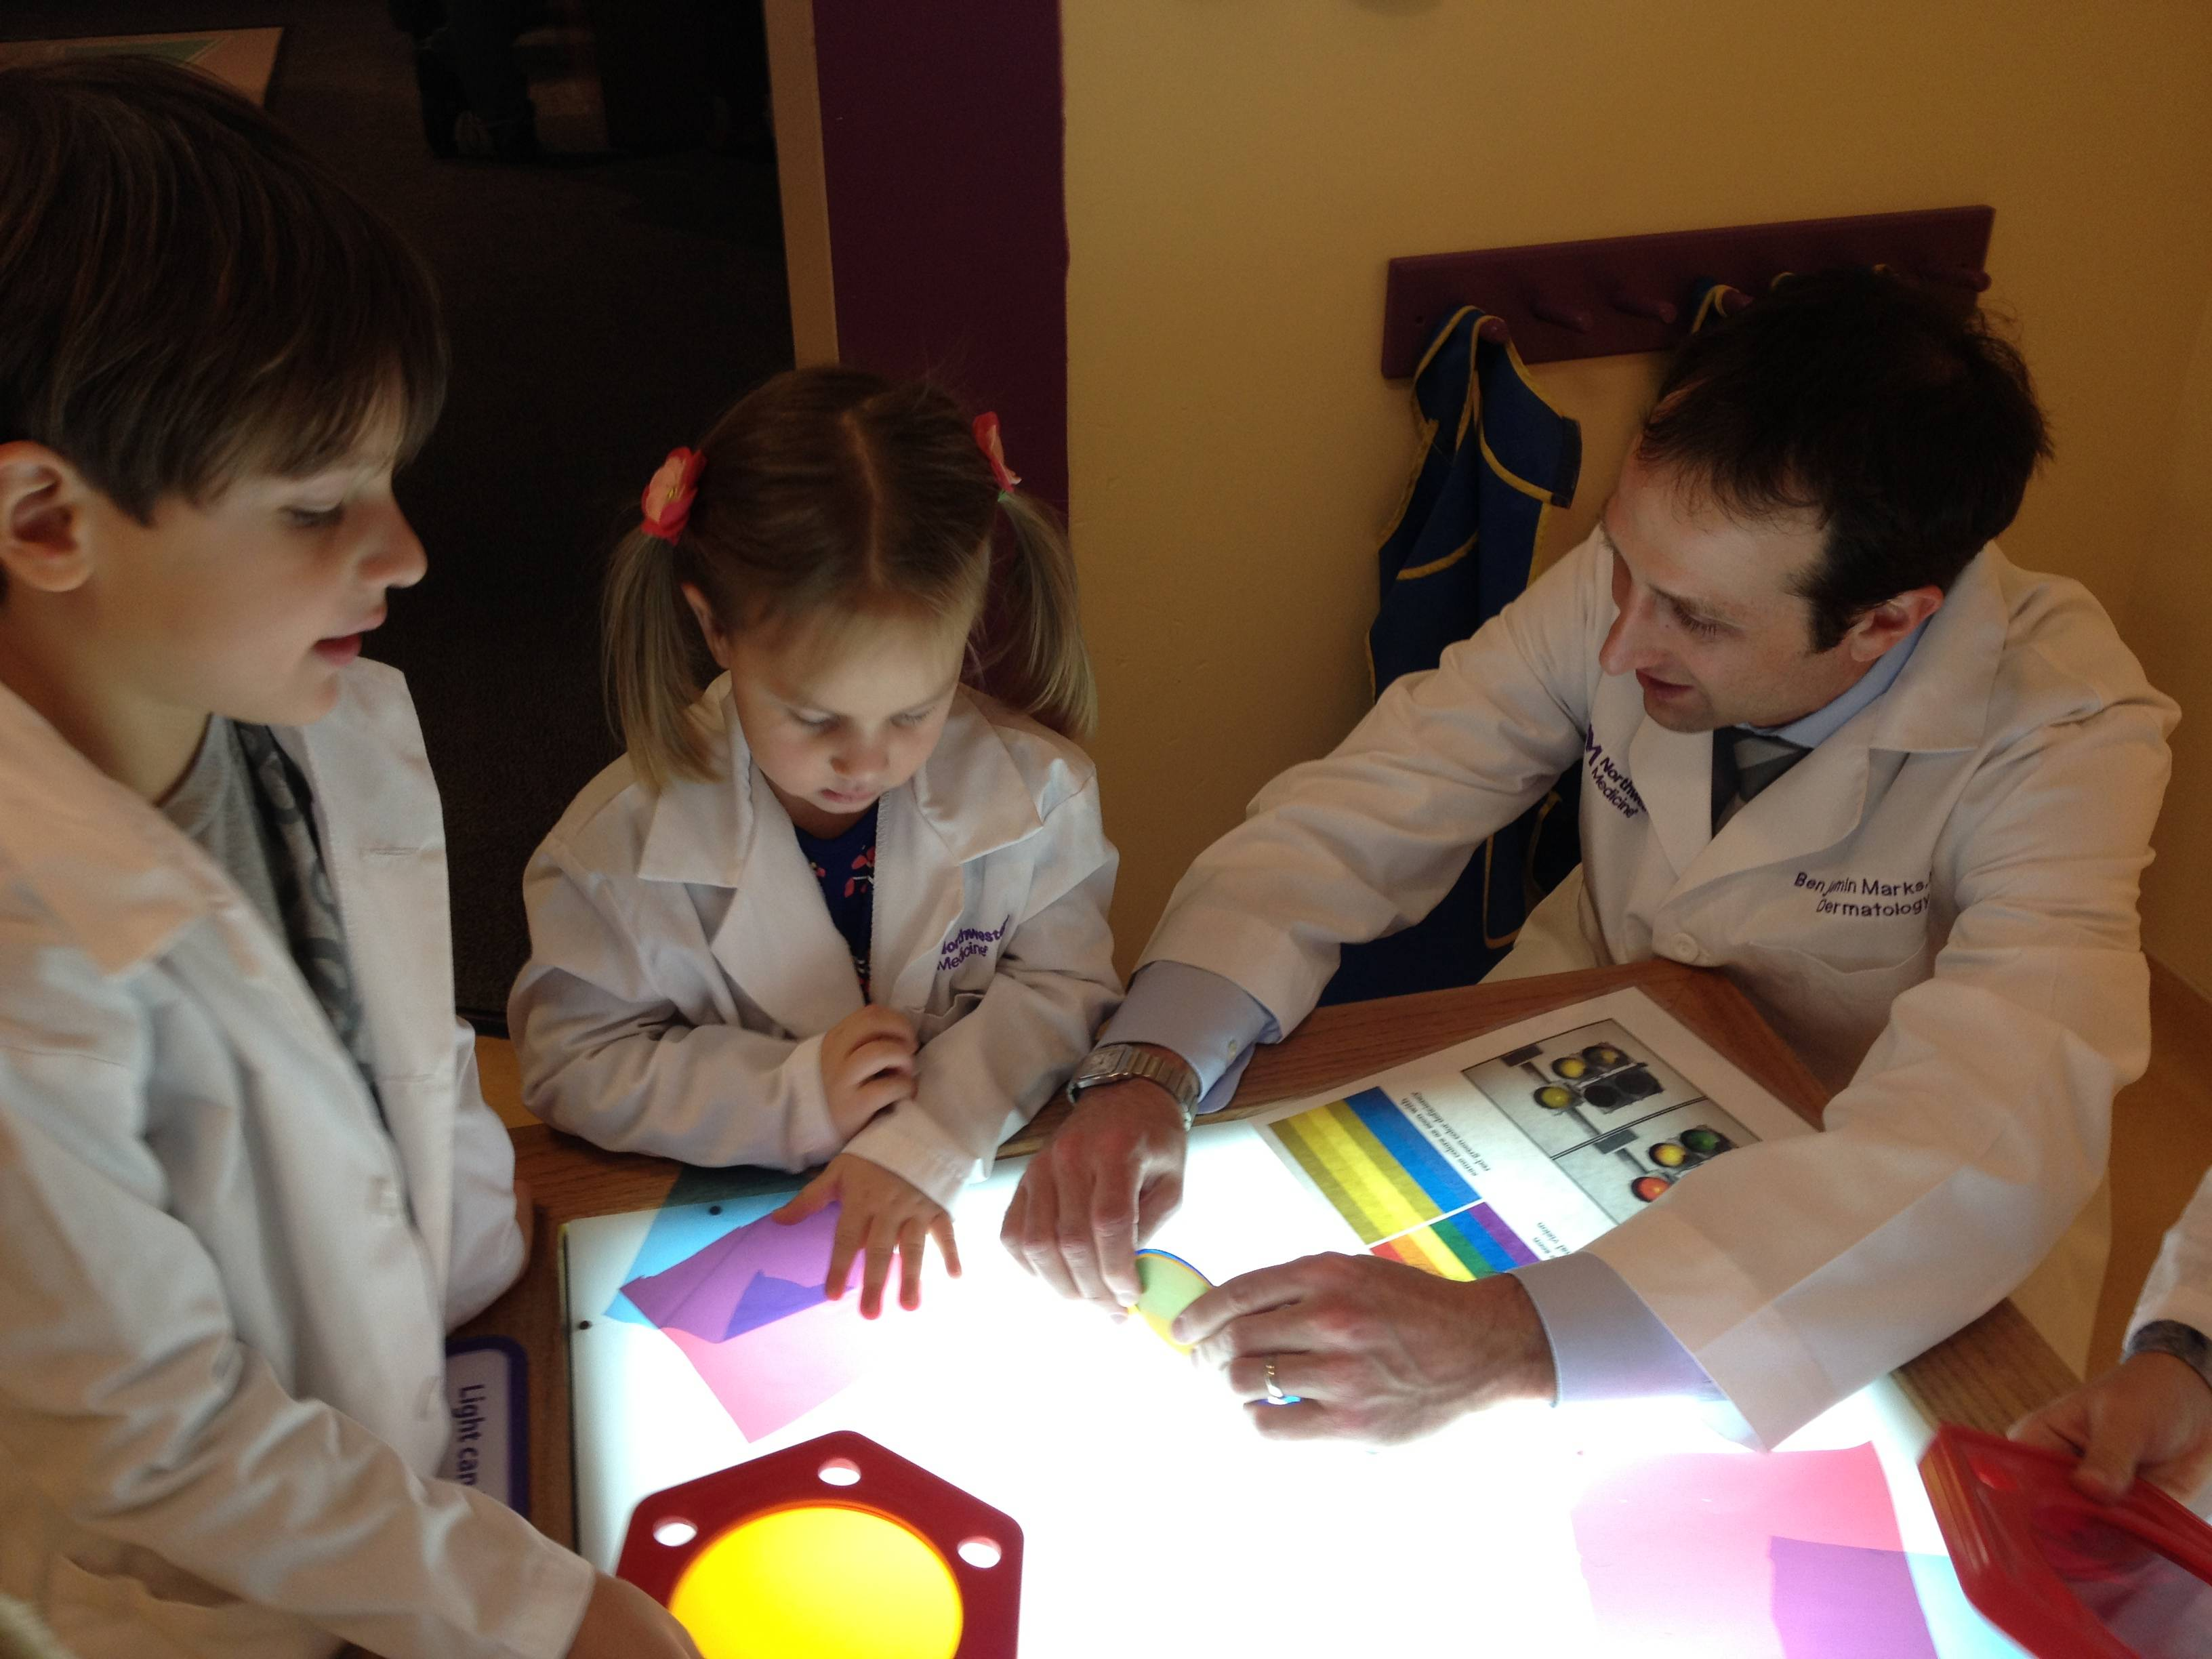 William and Emily Mawrowski discuss color and light with Benjamin Marks, MD, from Northwestern Medicine at the Science Fridays presentation at the Kohl Children's Museum.